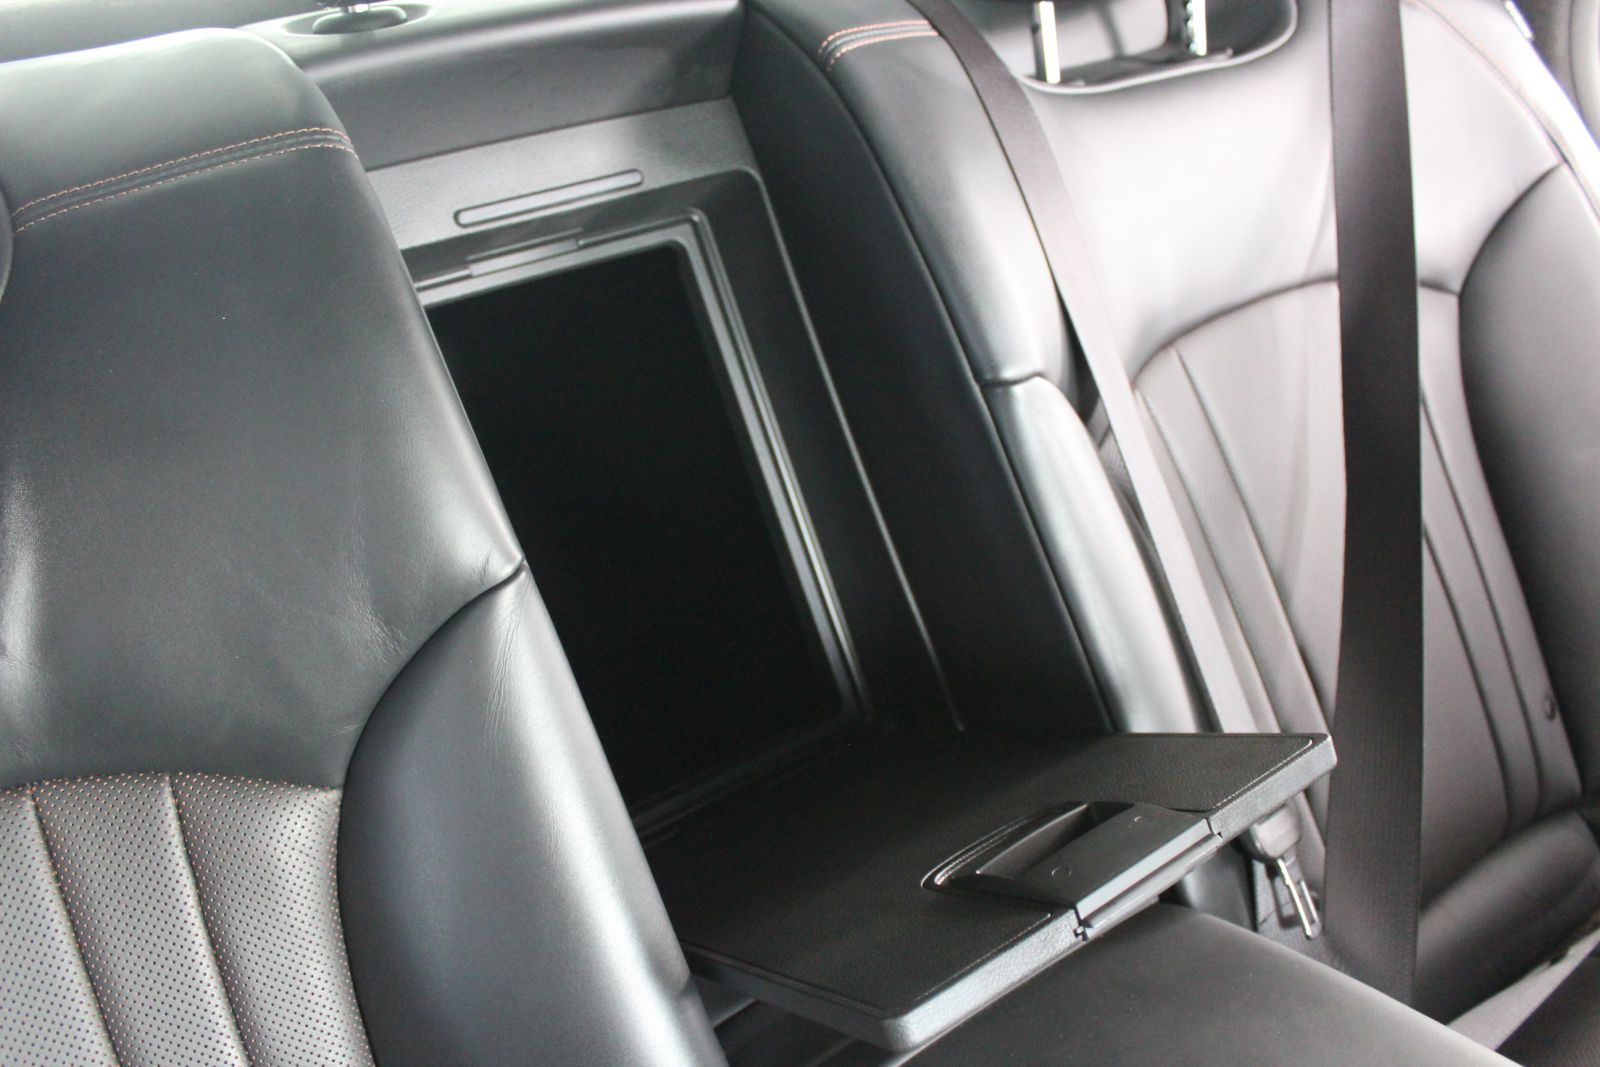 Sample Picture: A picture showing the rear center compartment of a 2018 GENESIS G80